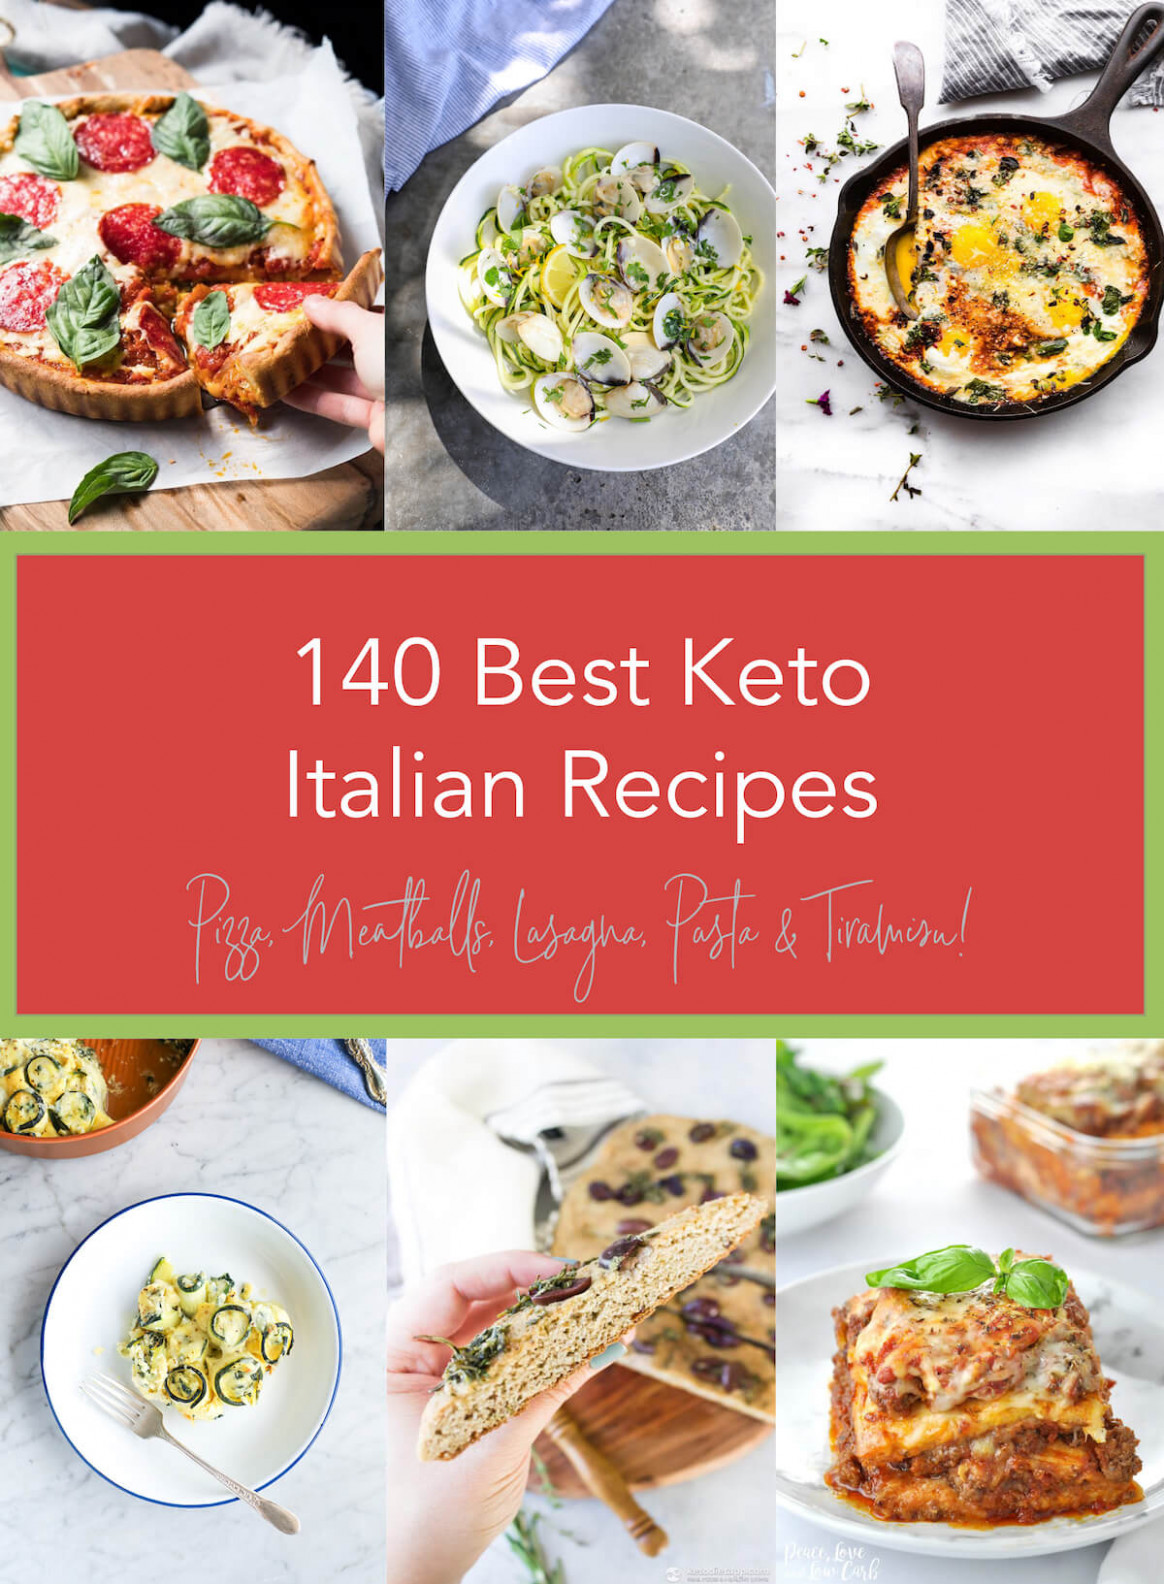 13 Best Keto Italian Recipes - Low Carb Pizza, Pasta ..